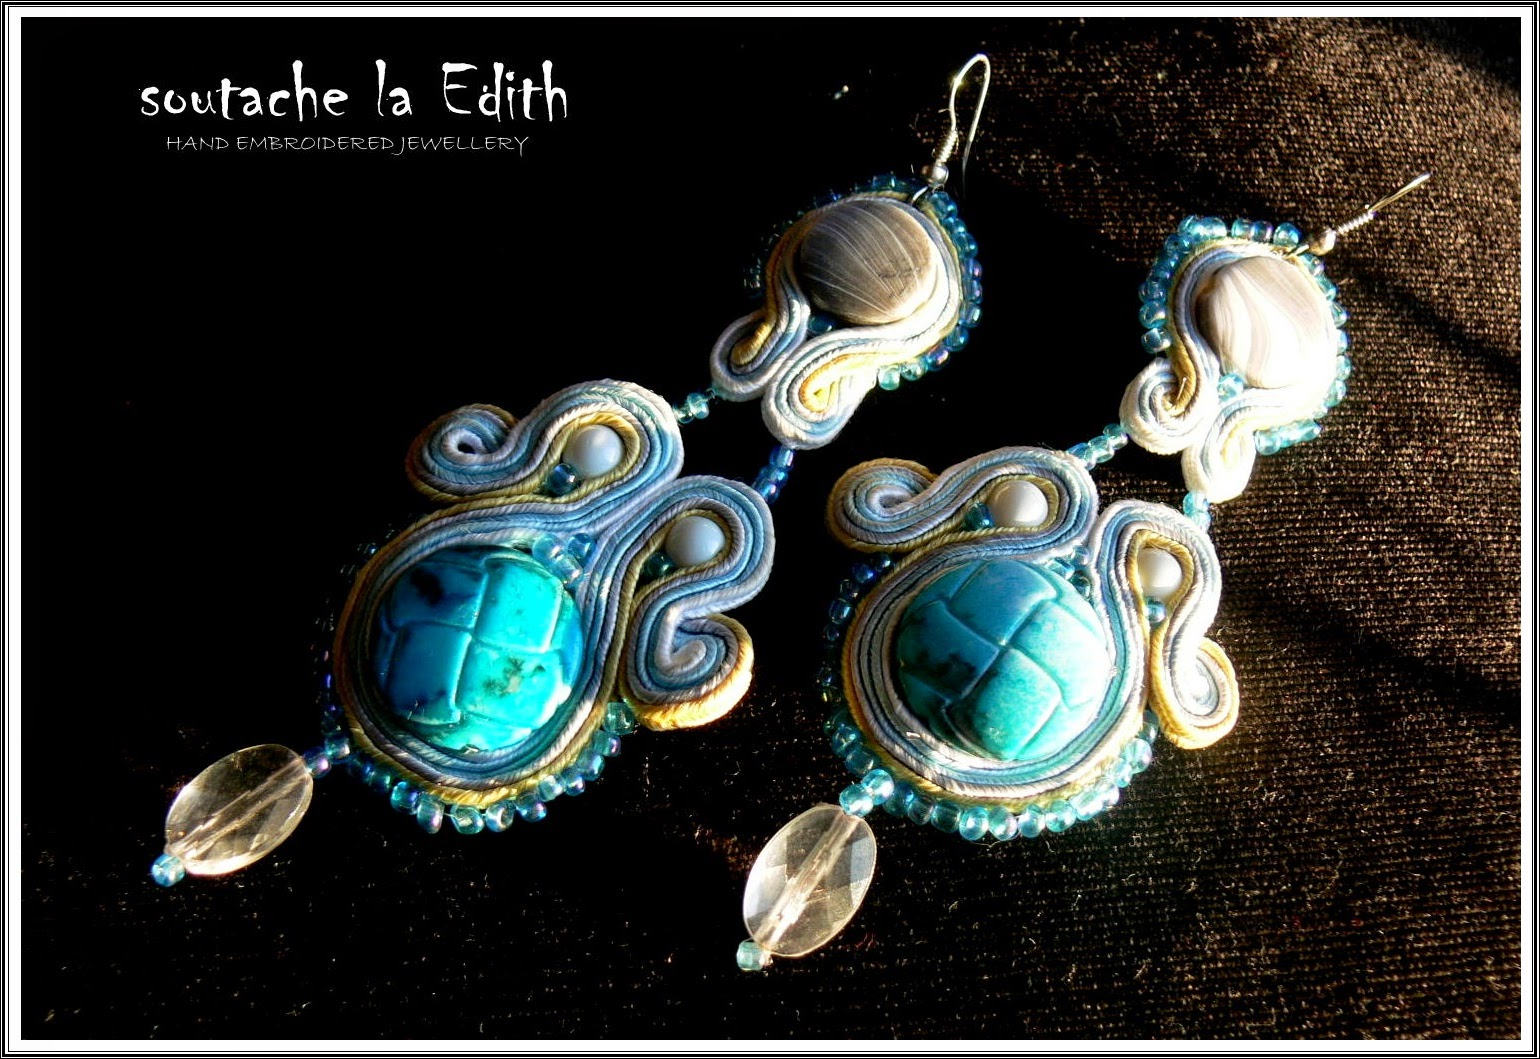 SOUTACHE LA EDITH... tu rządzi kolor!